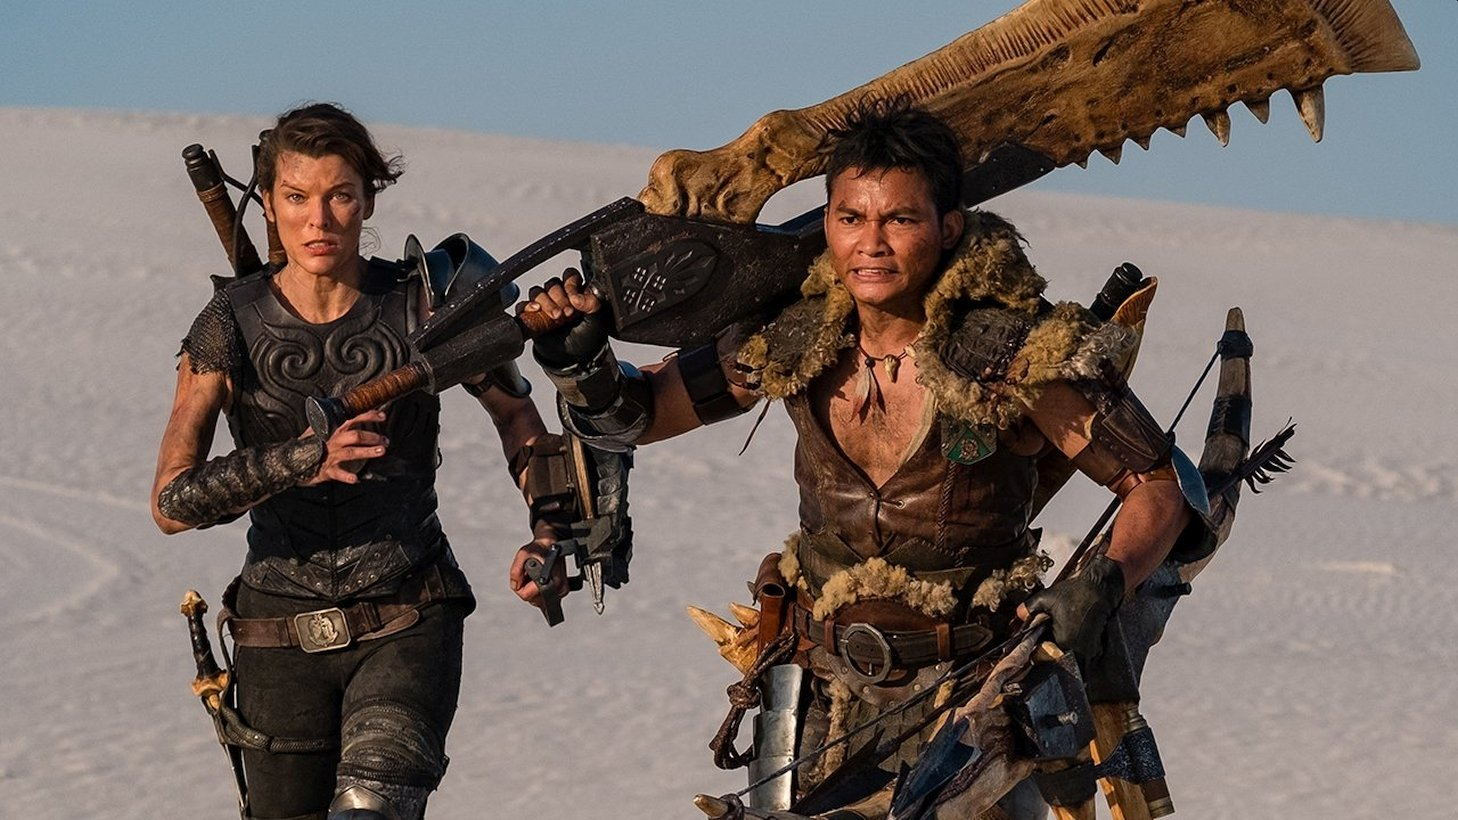 Monster Hunter Live-Action Movie Adaptation Delayed Until 2021 Due To Covid-19